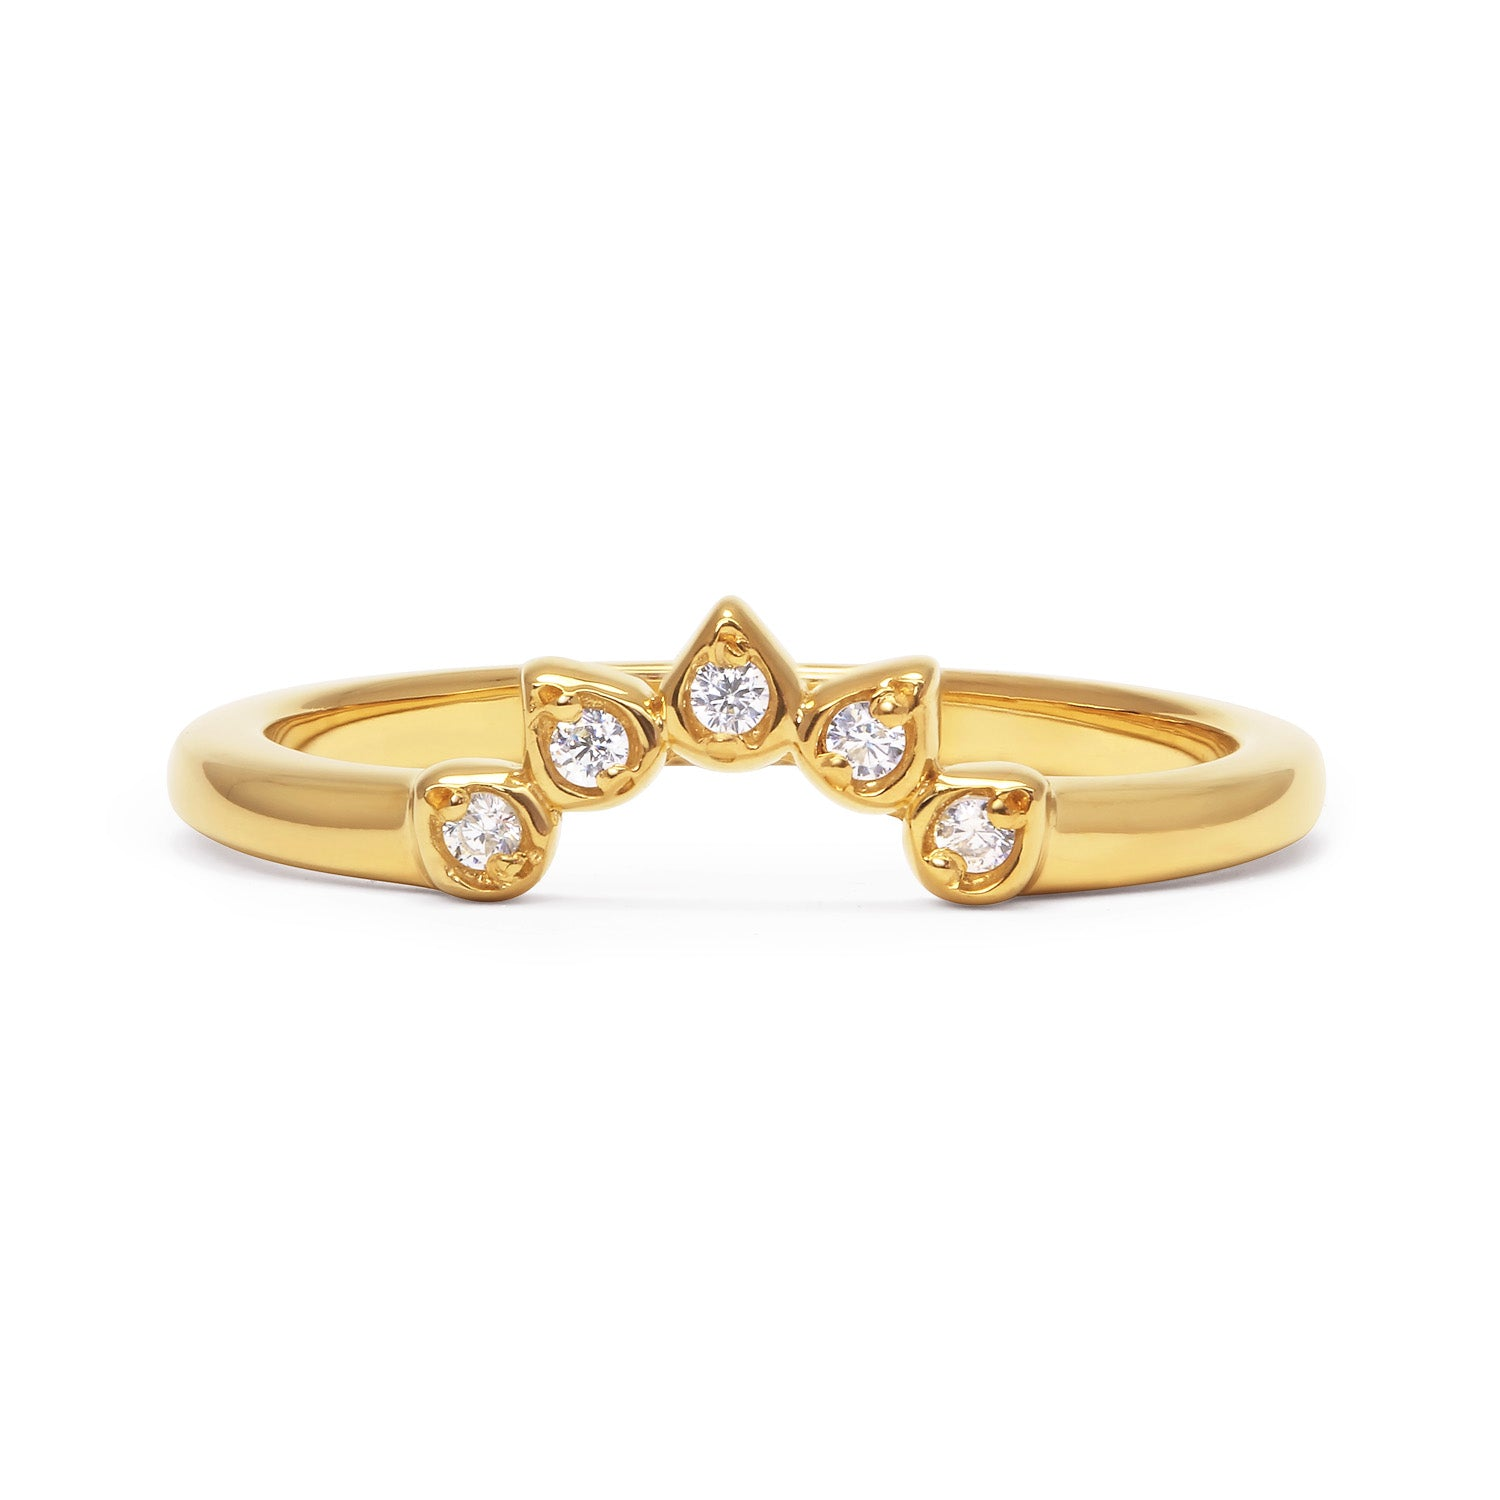 Teardrop Diamond Tiara Ethical Wedding Ring, 18ct Ethical Gold